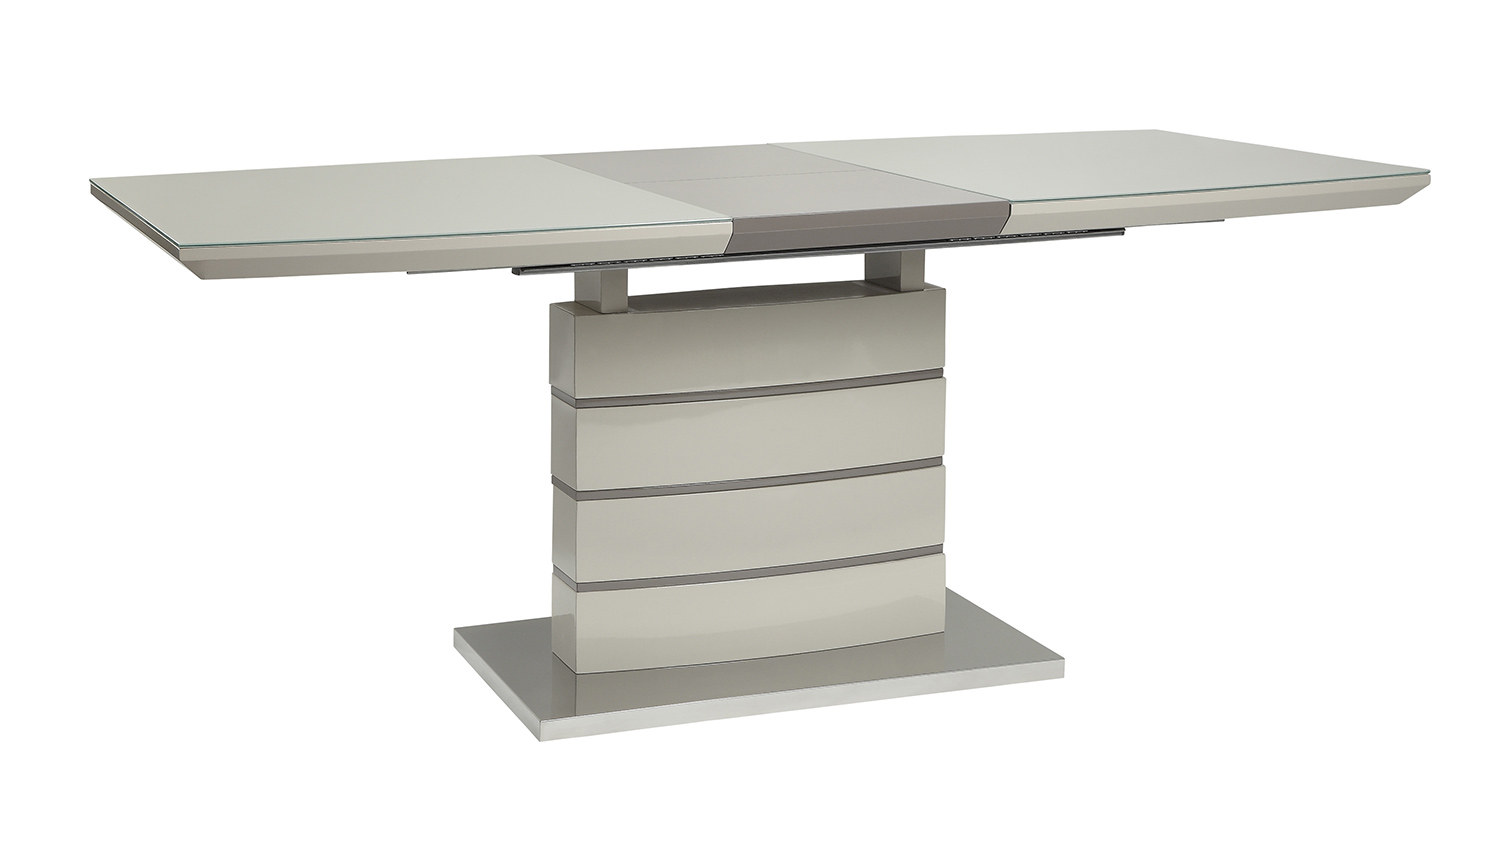 Homelegance Glissand Dining Table - Glossy - Grey-Taupe Bi-Cast Vinyl